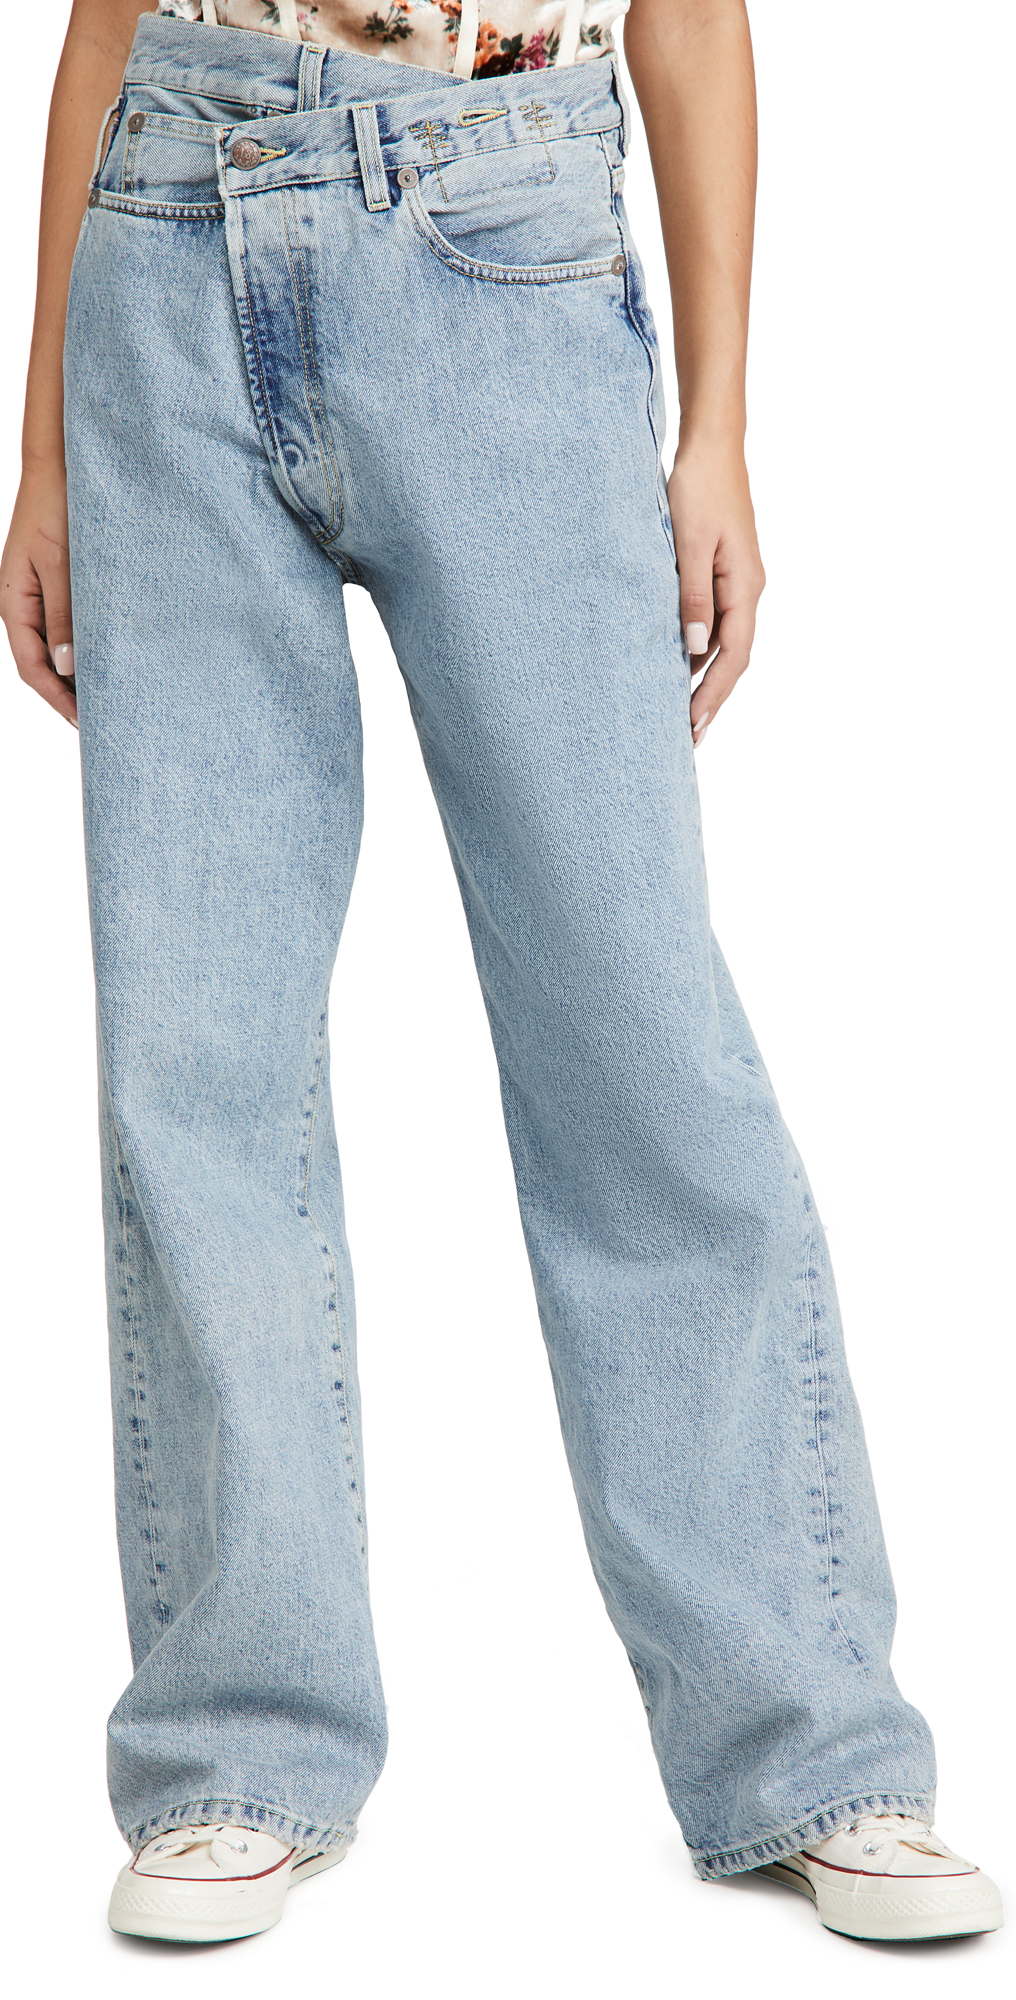 R13 Wide Leg Cross Over Jeans